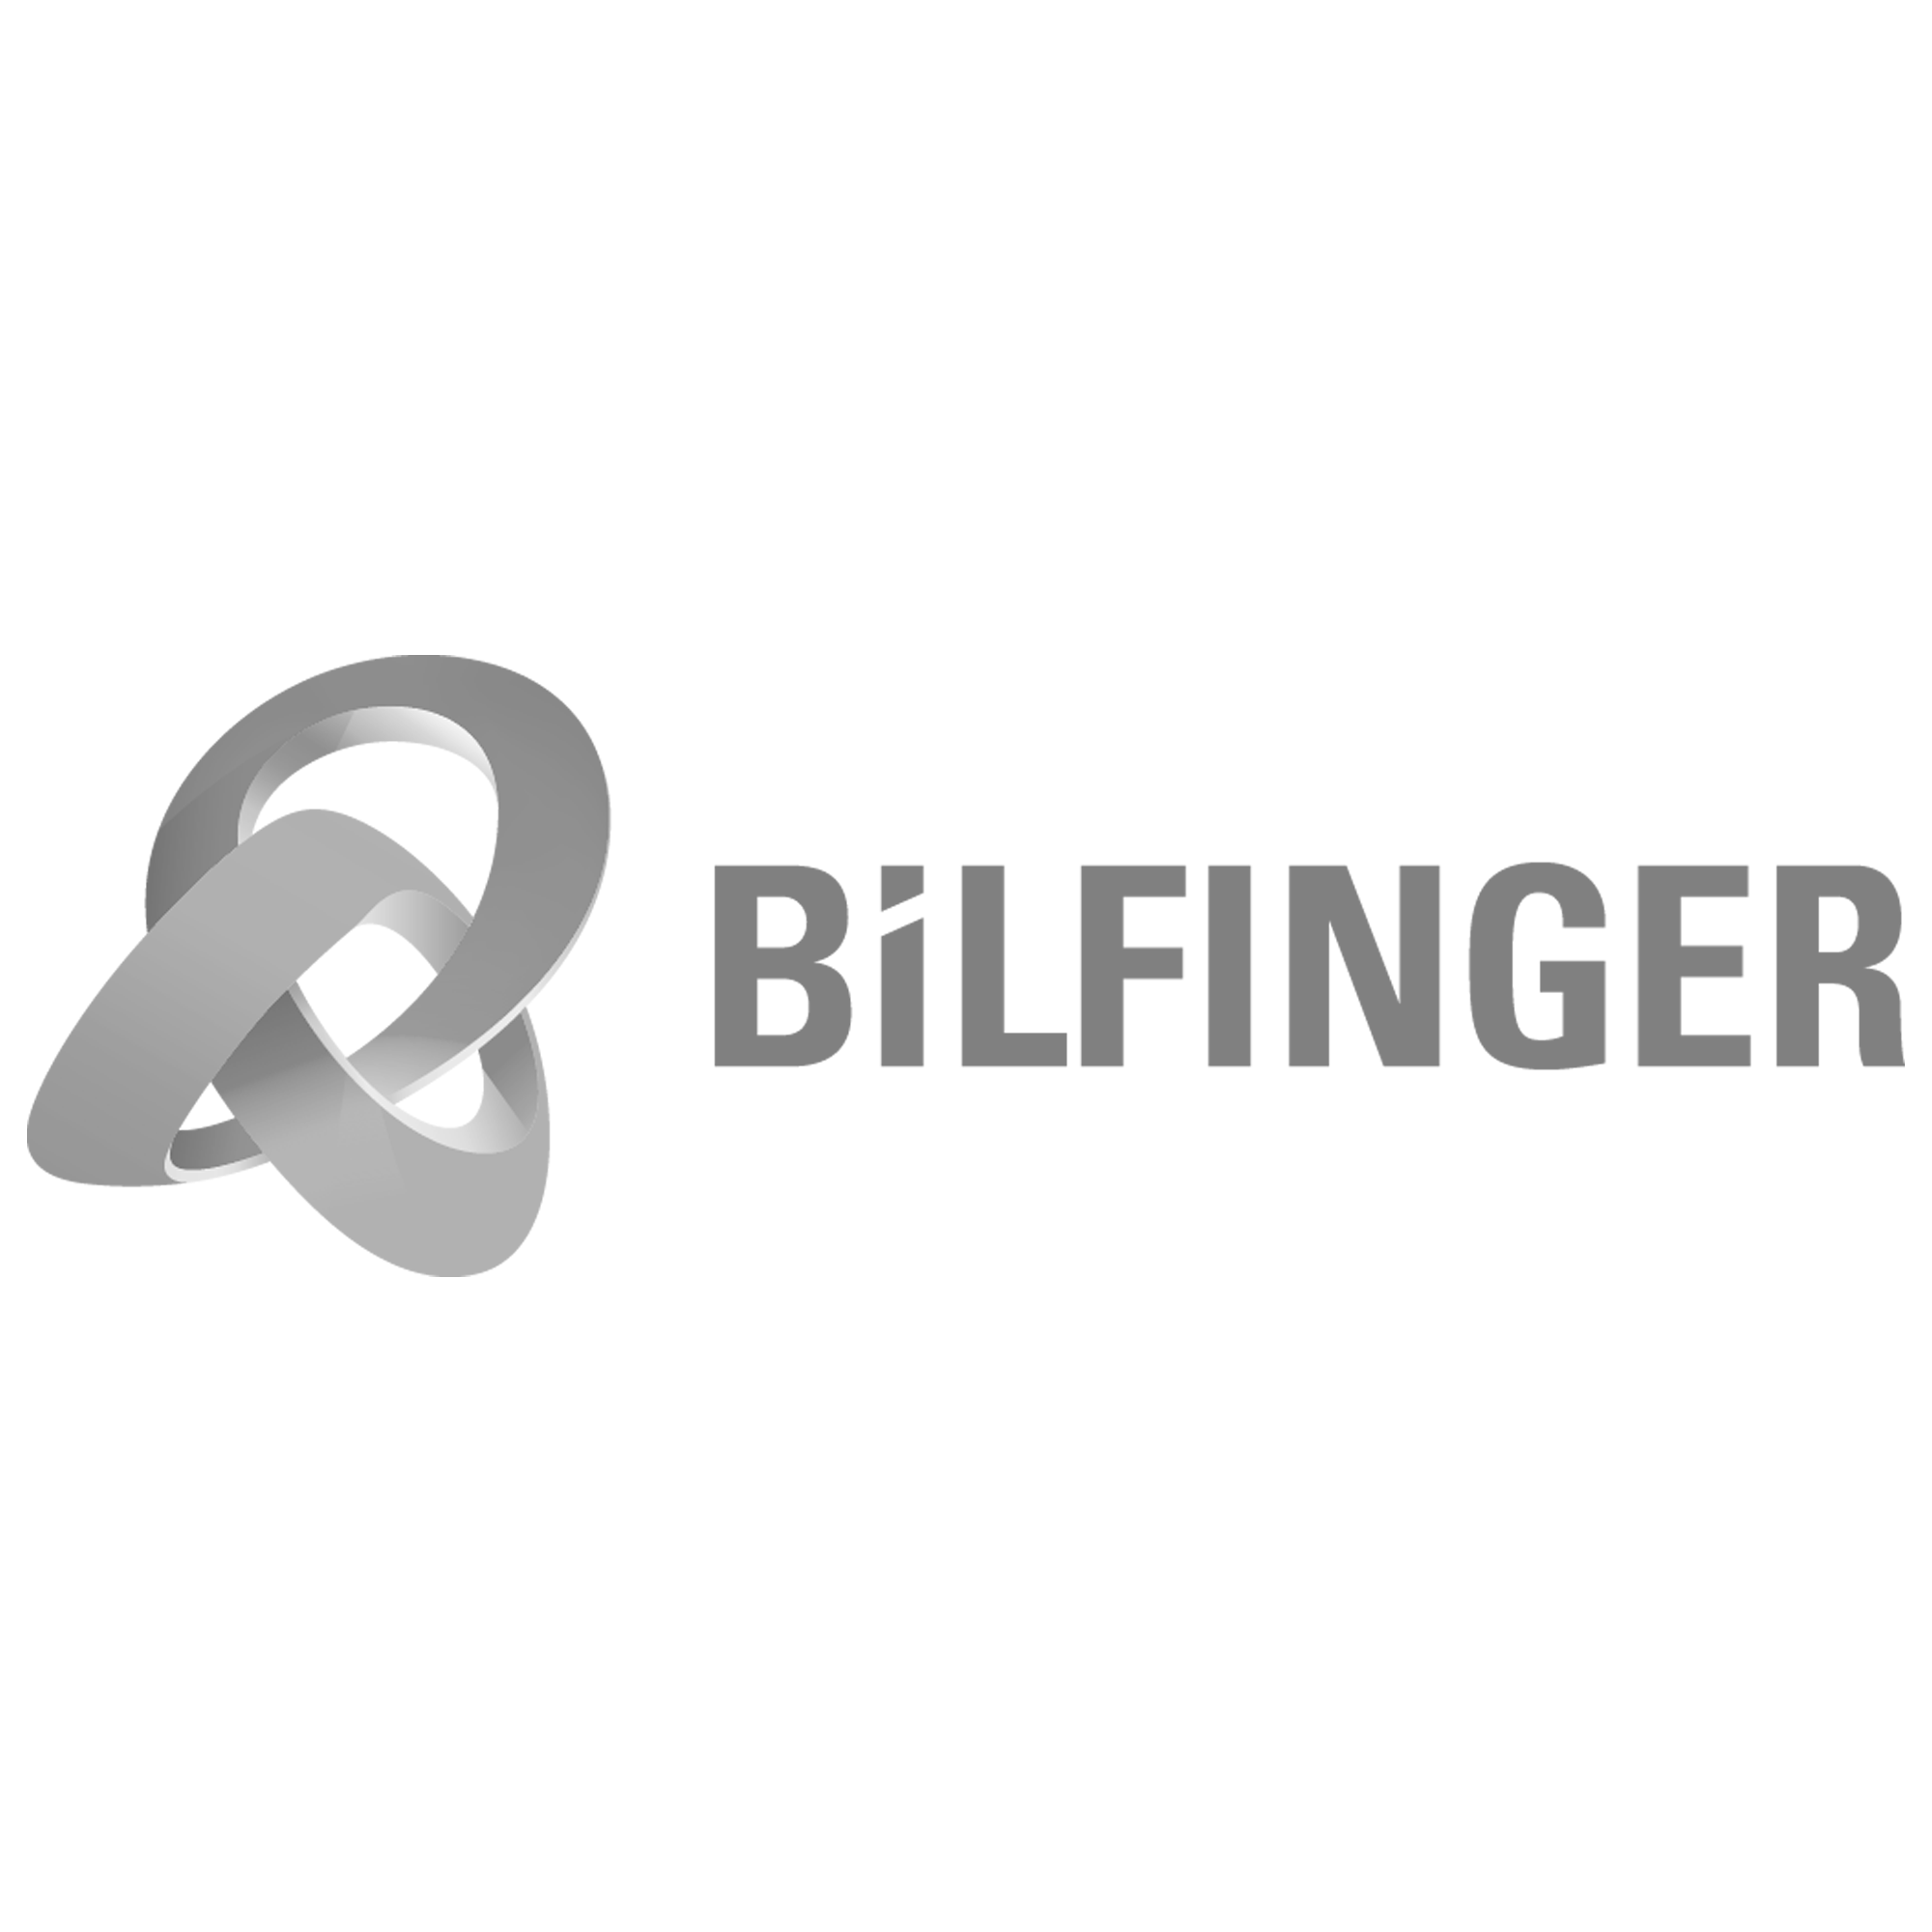 bilfinger logo black and white.png